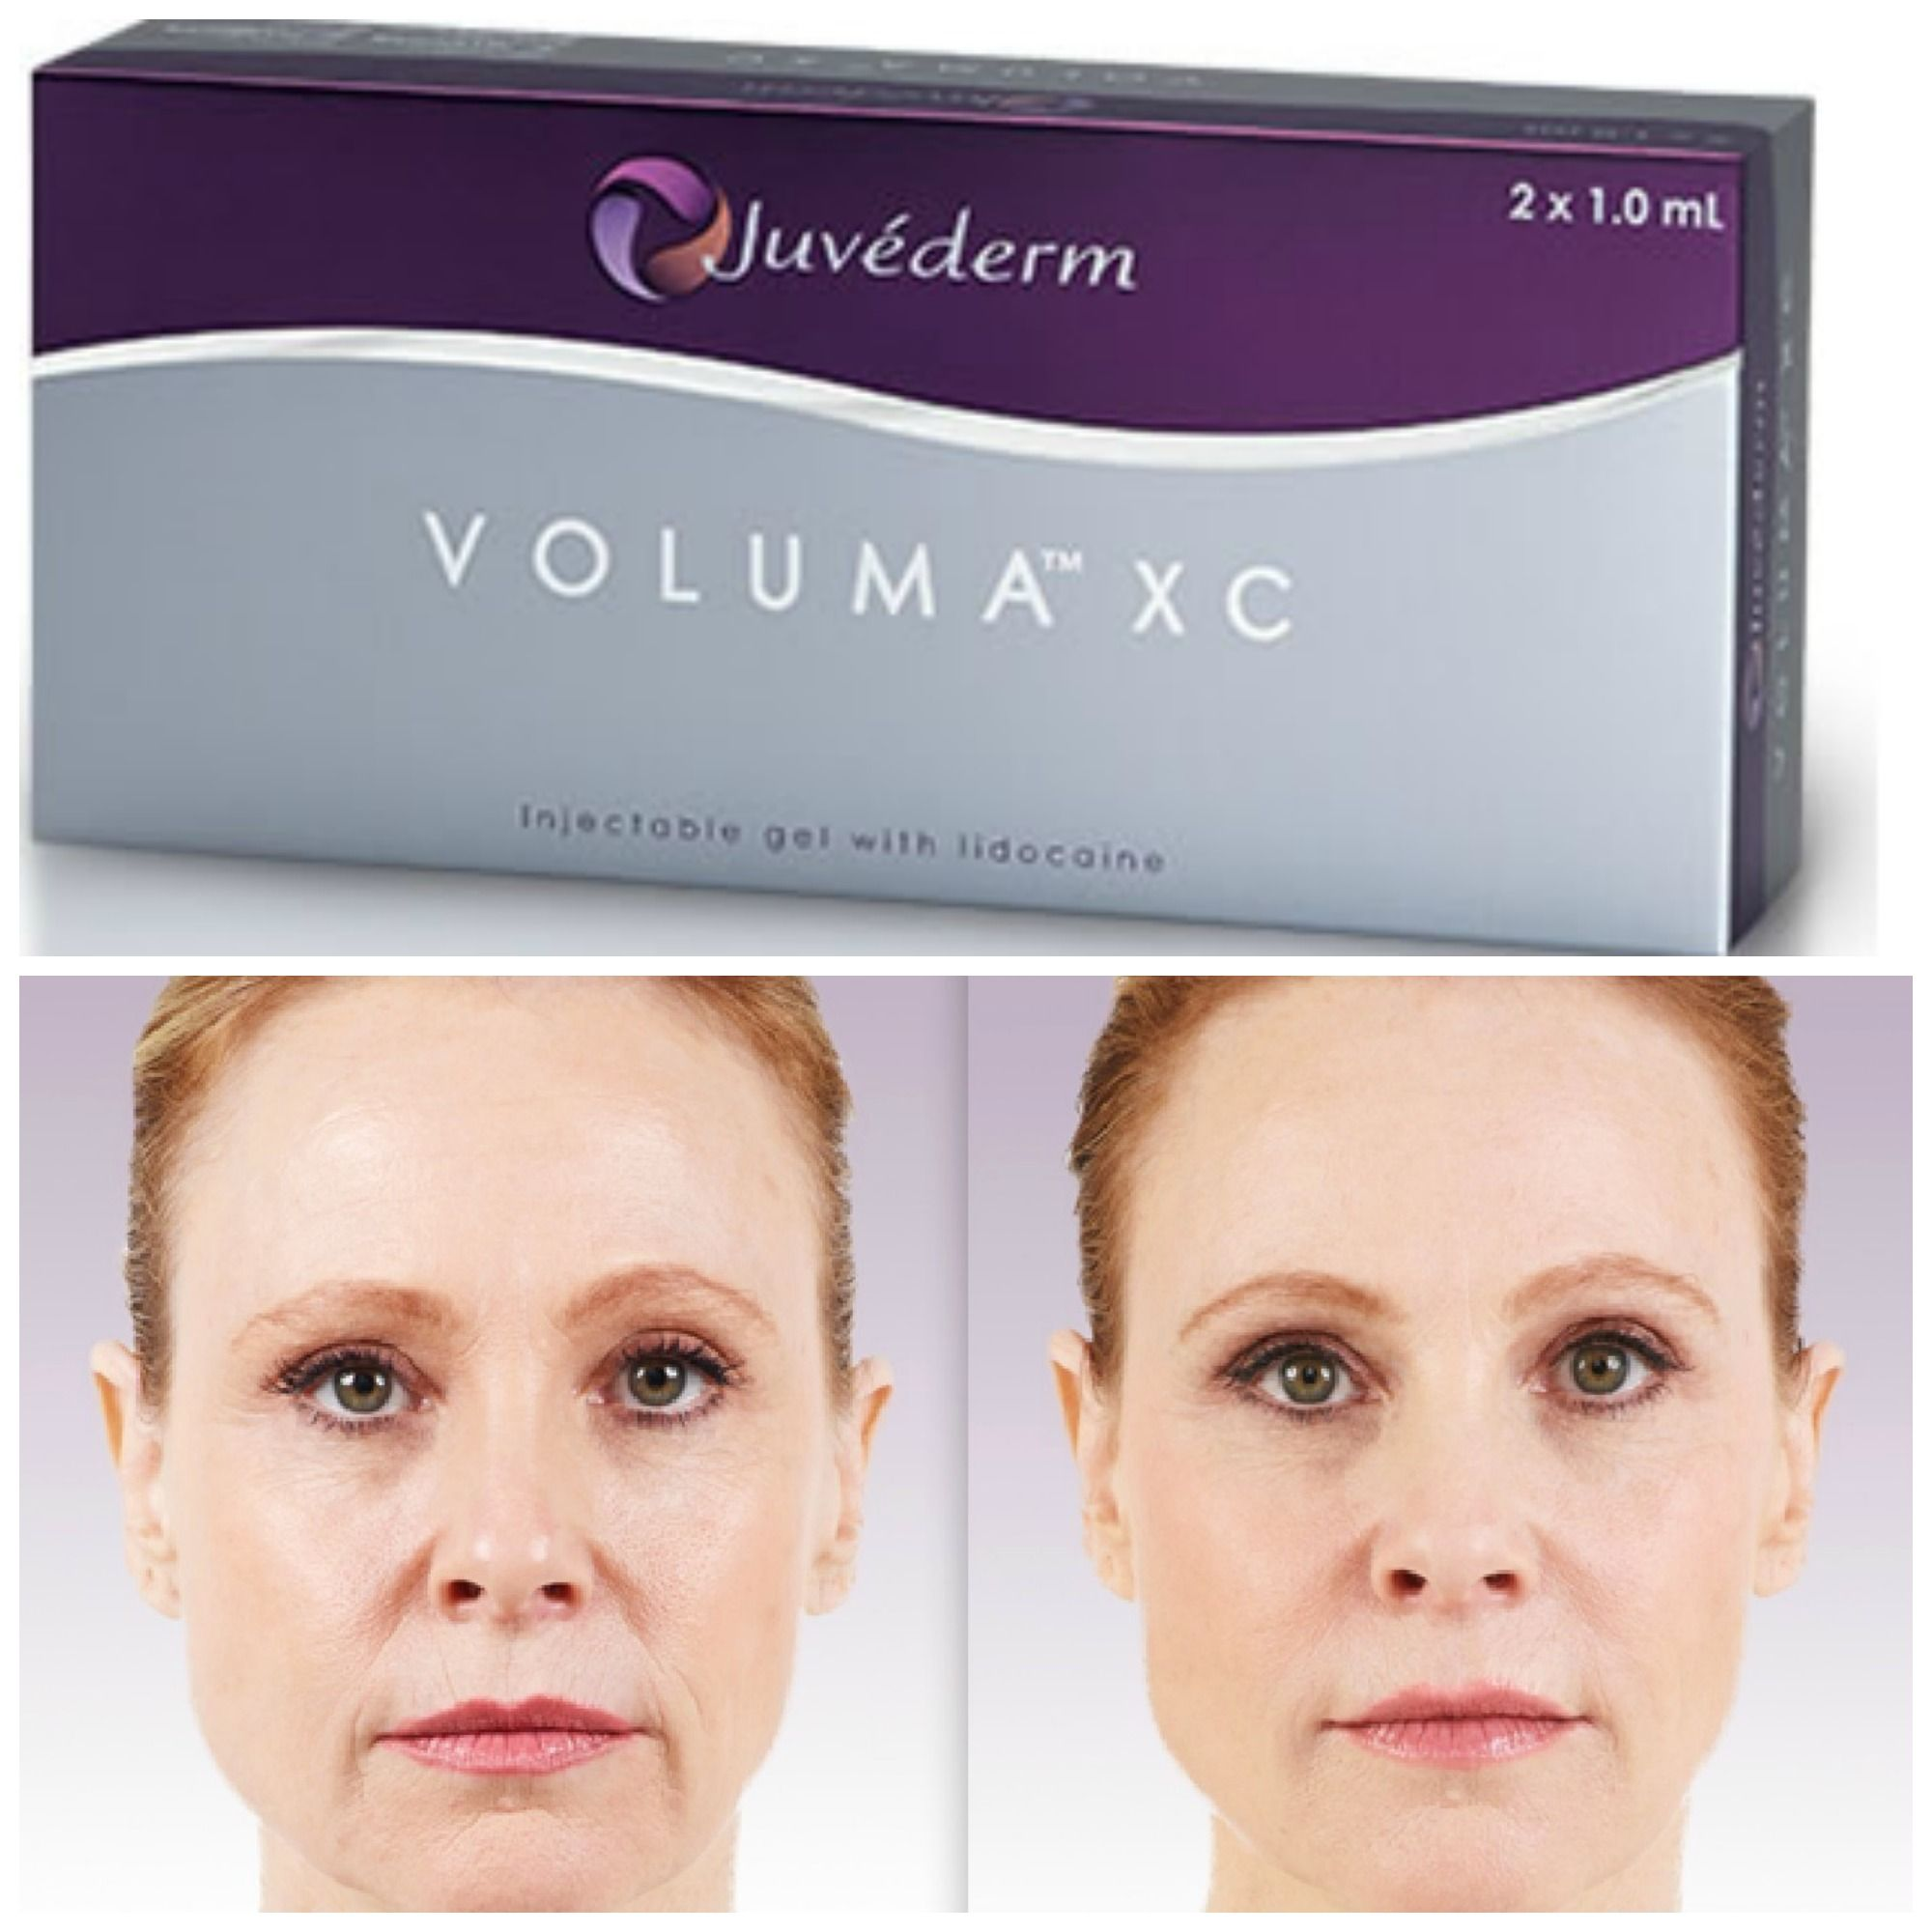 Juvederm Voluma Xc Injectable Instant Cheek Volume With Up To 2 Year Results Dermal Fillers Cheek Fillers Laser Skin Rejuvenation